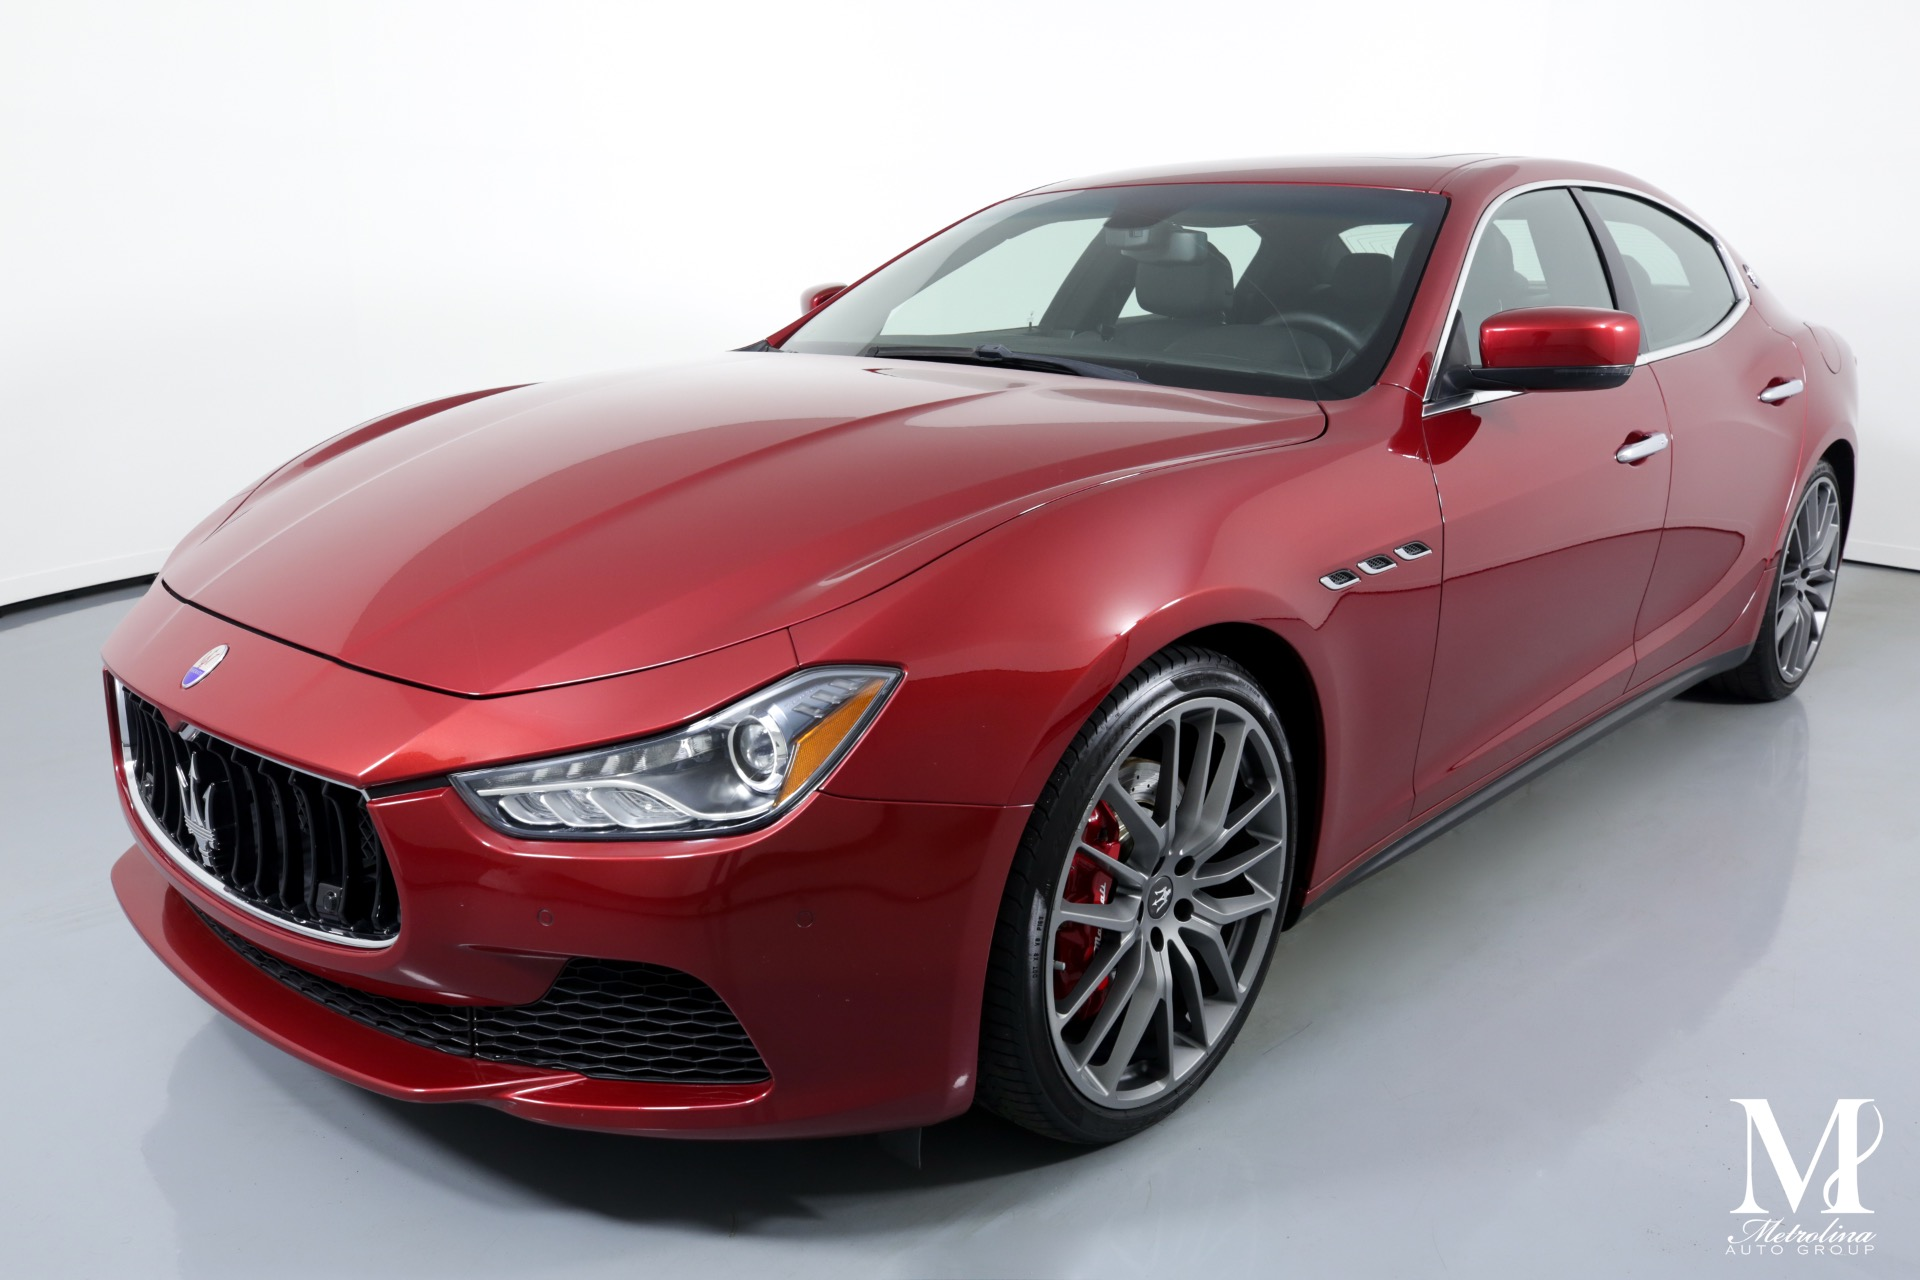 Used 2014 Maserati Ghibli S Q4 for sale Sold at Metrolina Auto Group in Charlotte NC 28217 - 4